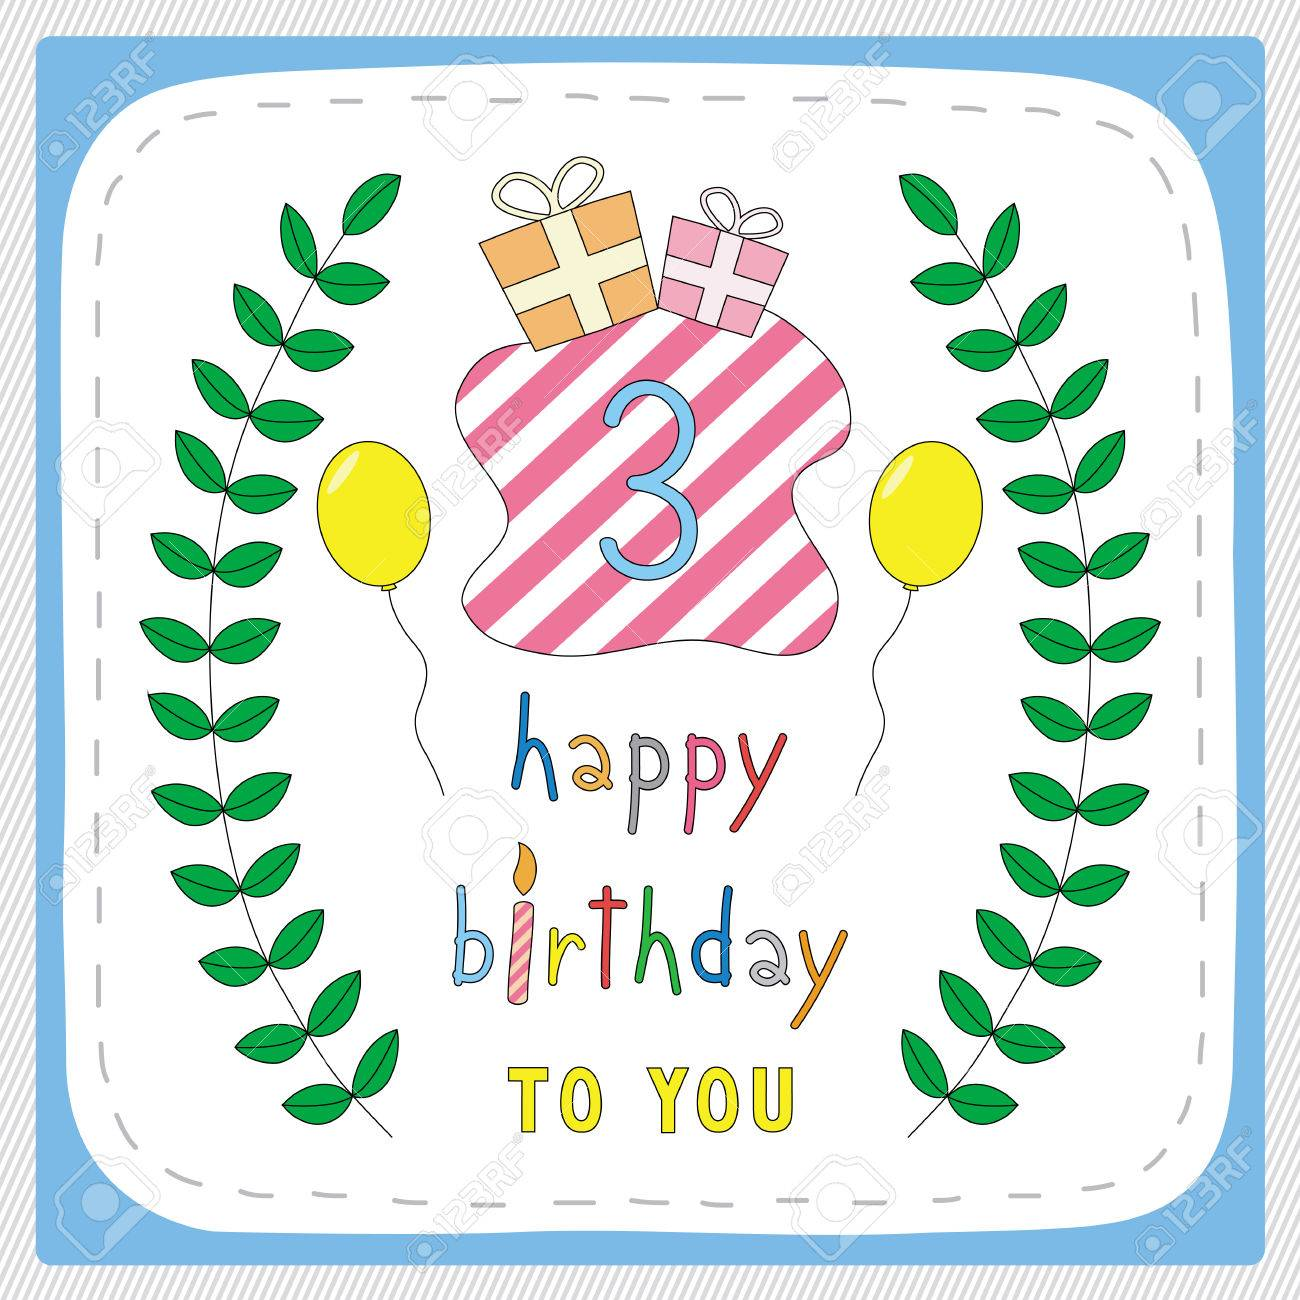 Happy Birthday Card With 3rd And For 3 Years Anniversary Celebration Stock Vector